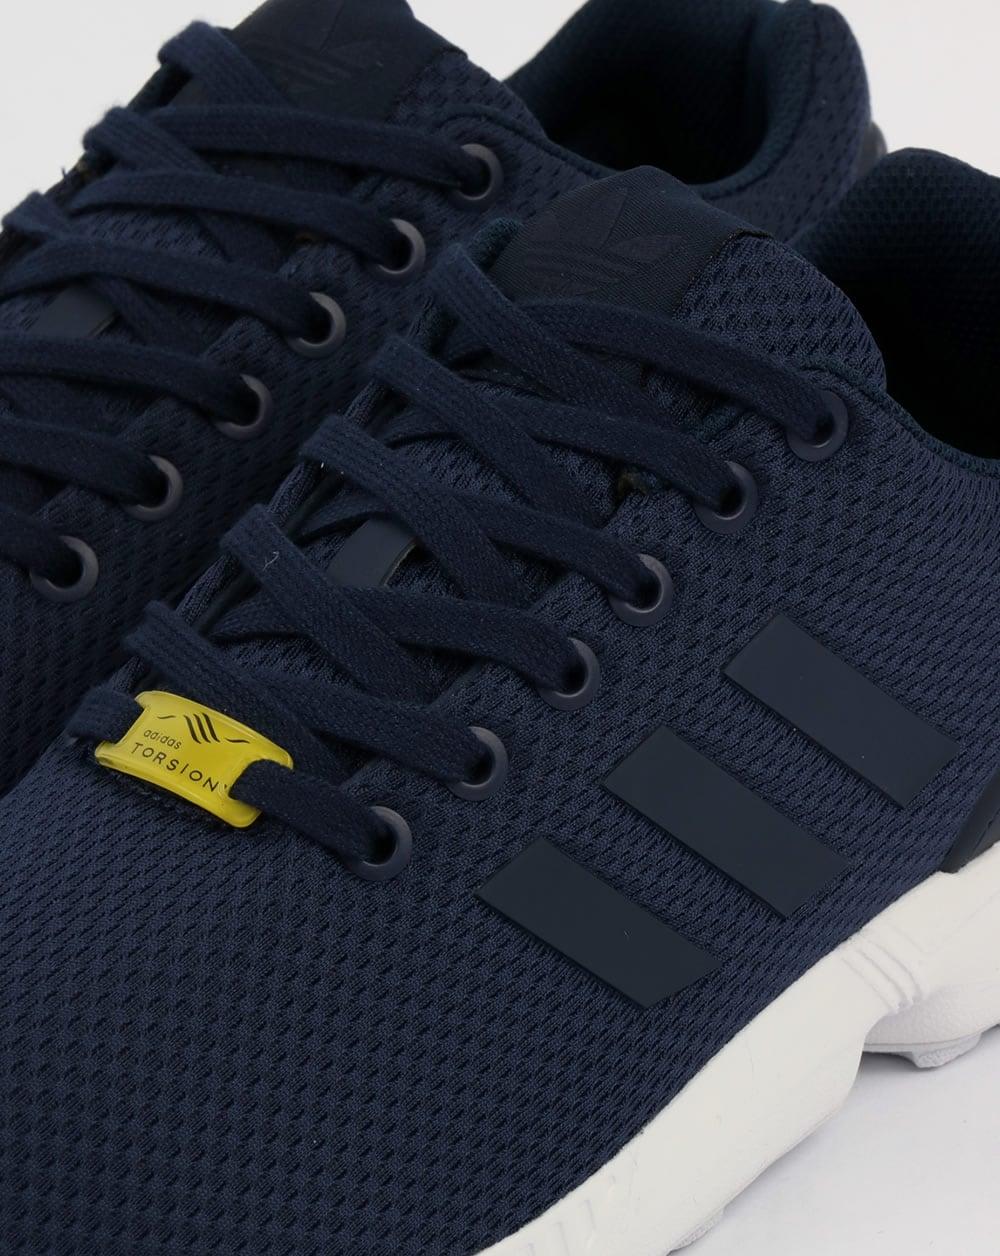 arrives 1b8a4 a68ab Adidas ZX Flux Trainers New NavyWhite